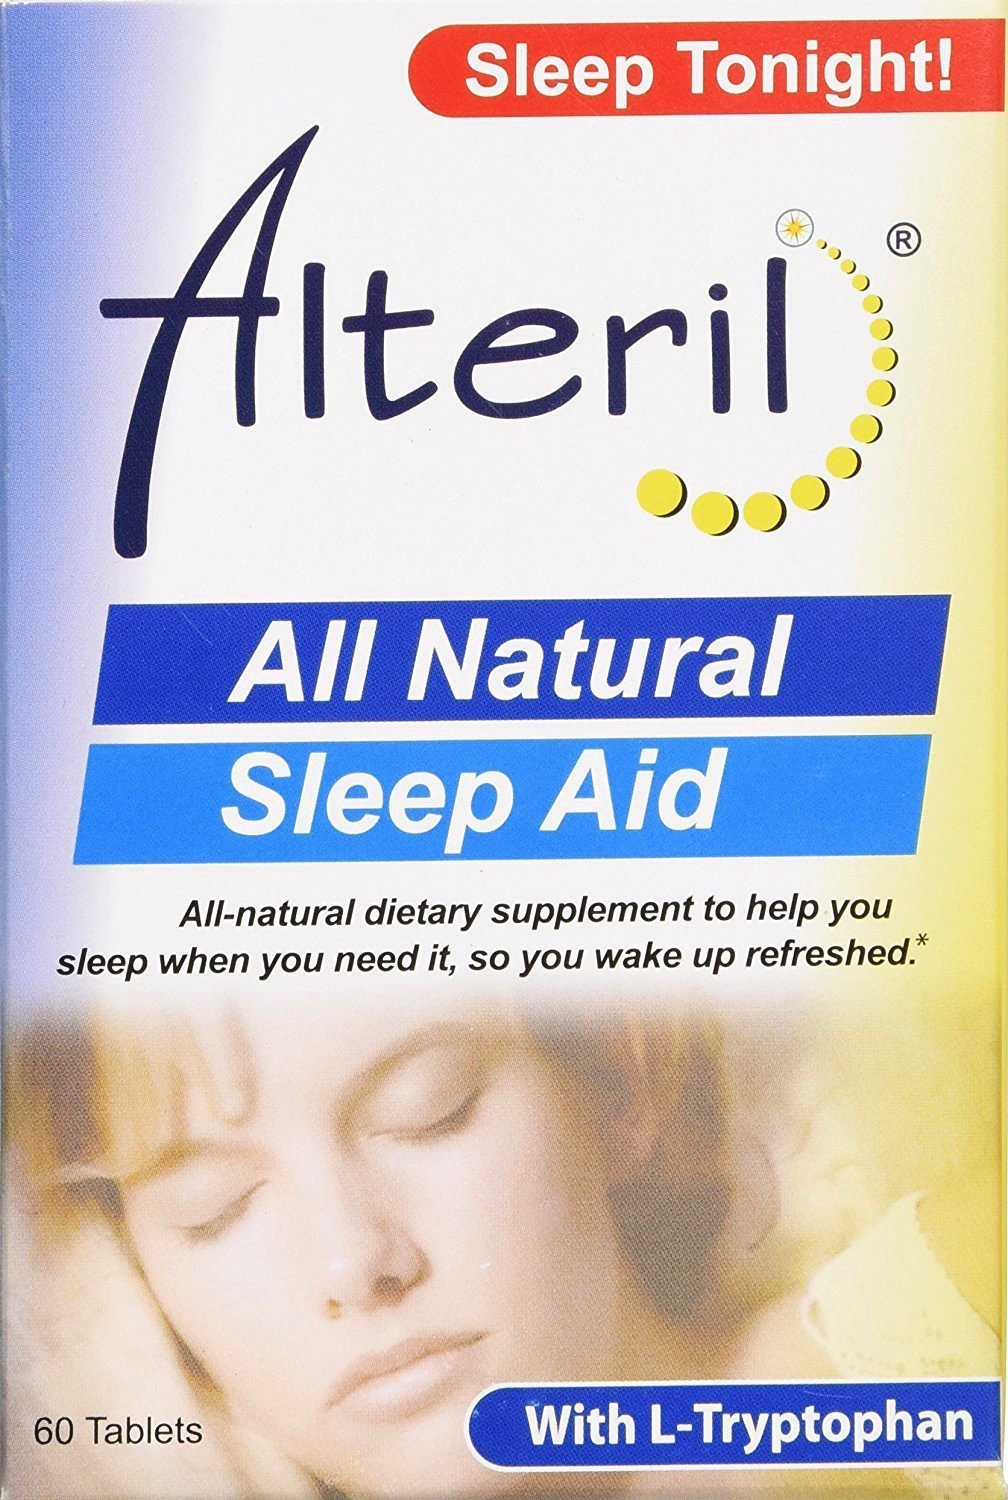 ALTERIL SLEEP AID TABS 120 sleeping pills or otc sleep aids - 81YCjJc2xCL - Sleeping pills or OTC sleep aids – risks and side effects